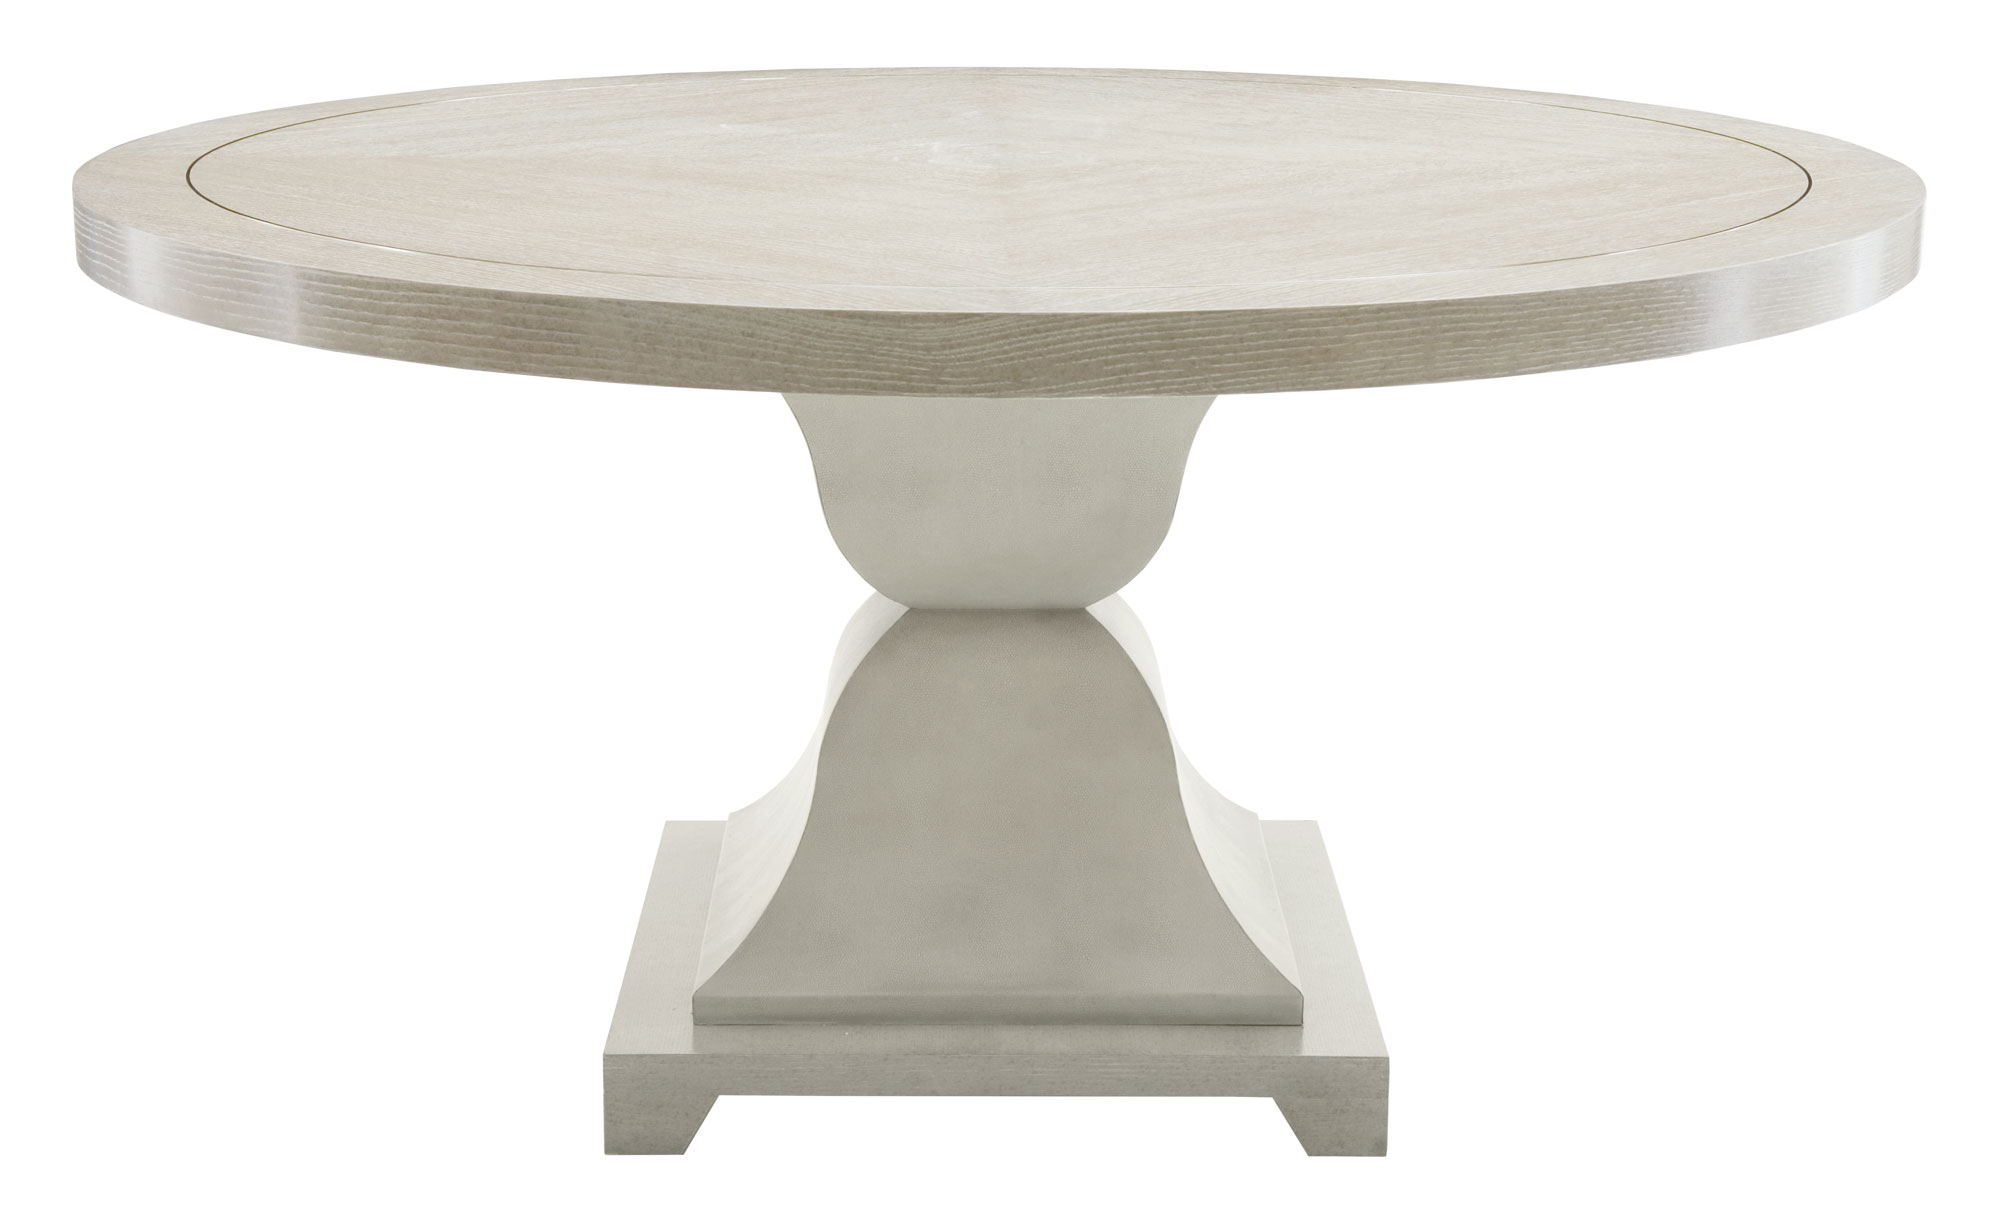 Round Dining Table Bernhardt Dining Room Table 6 Chairs intended for Well known Dawson Pedestal Dining Tables